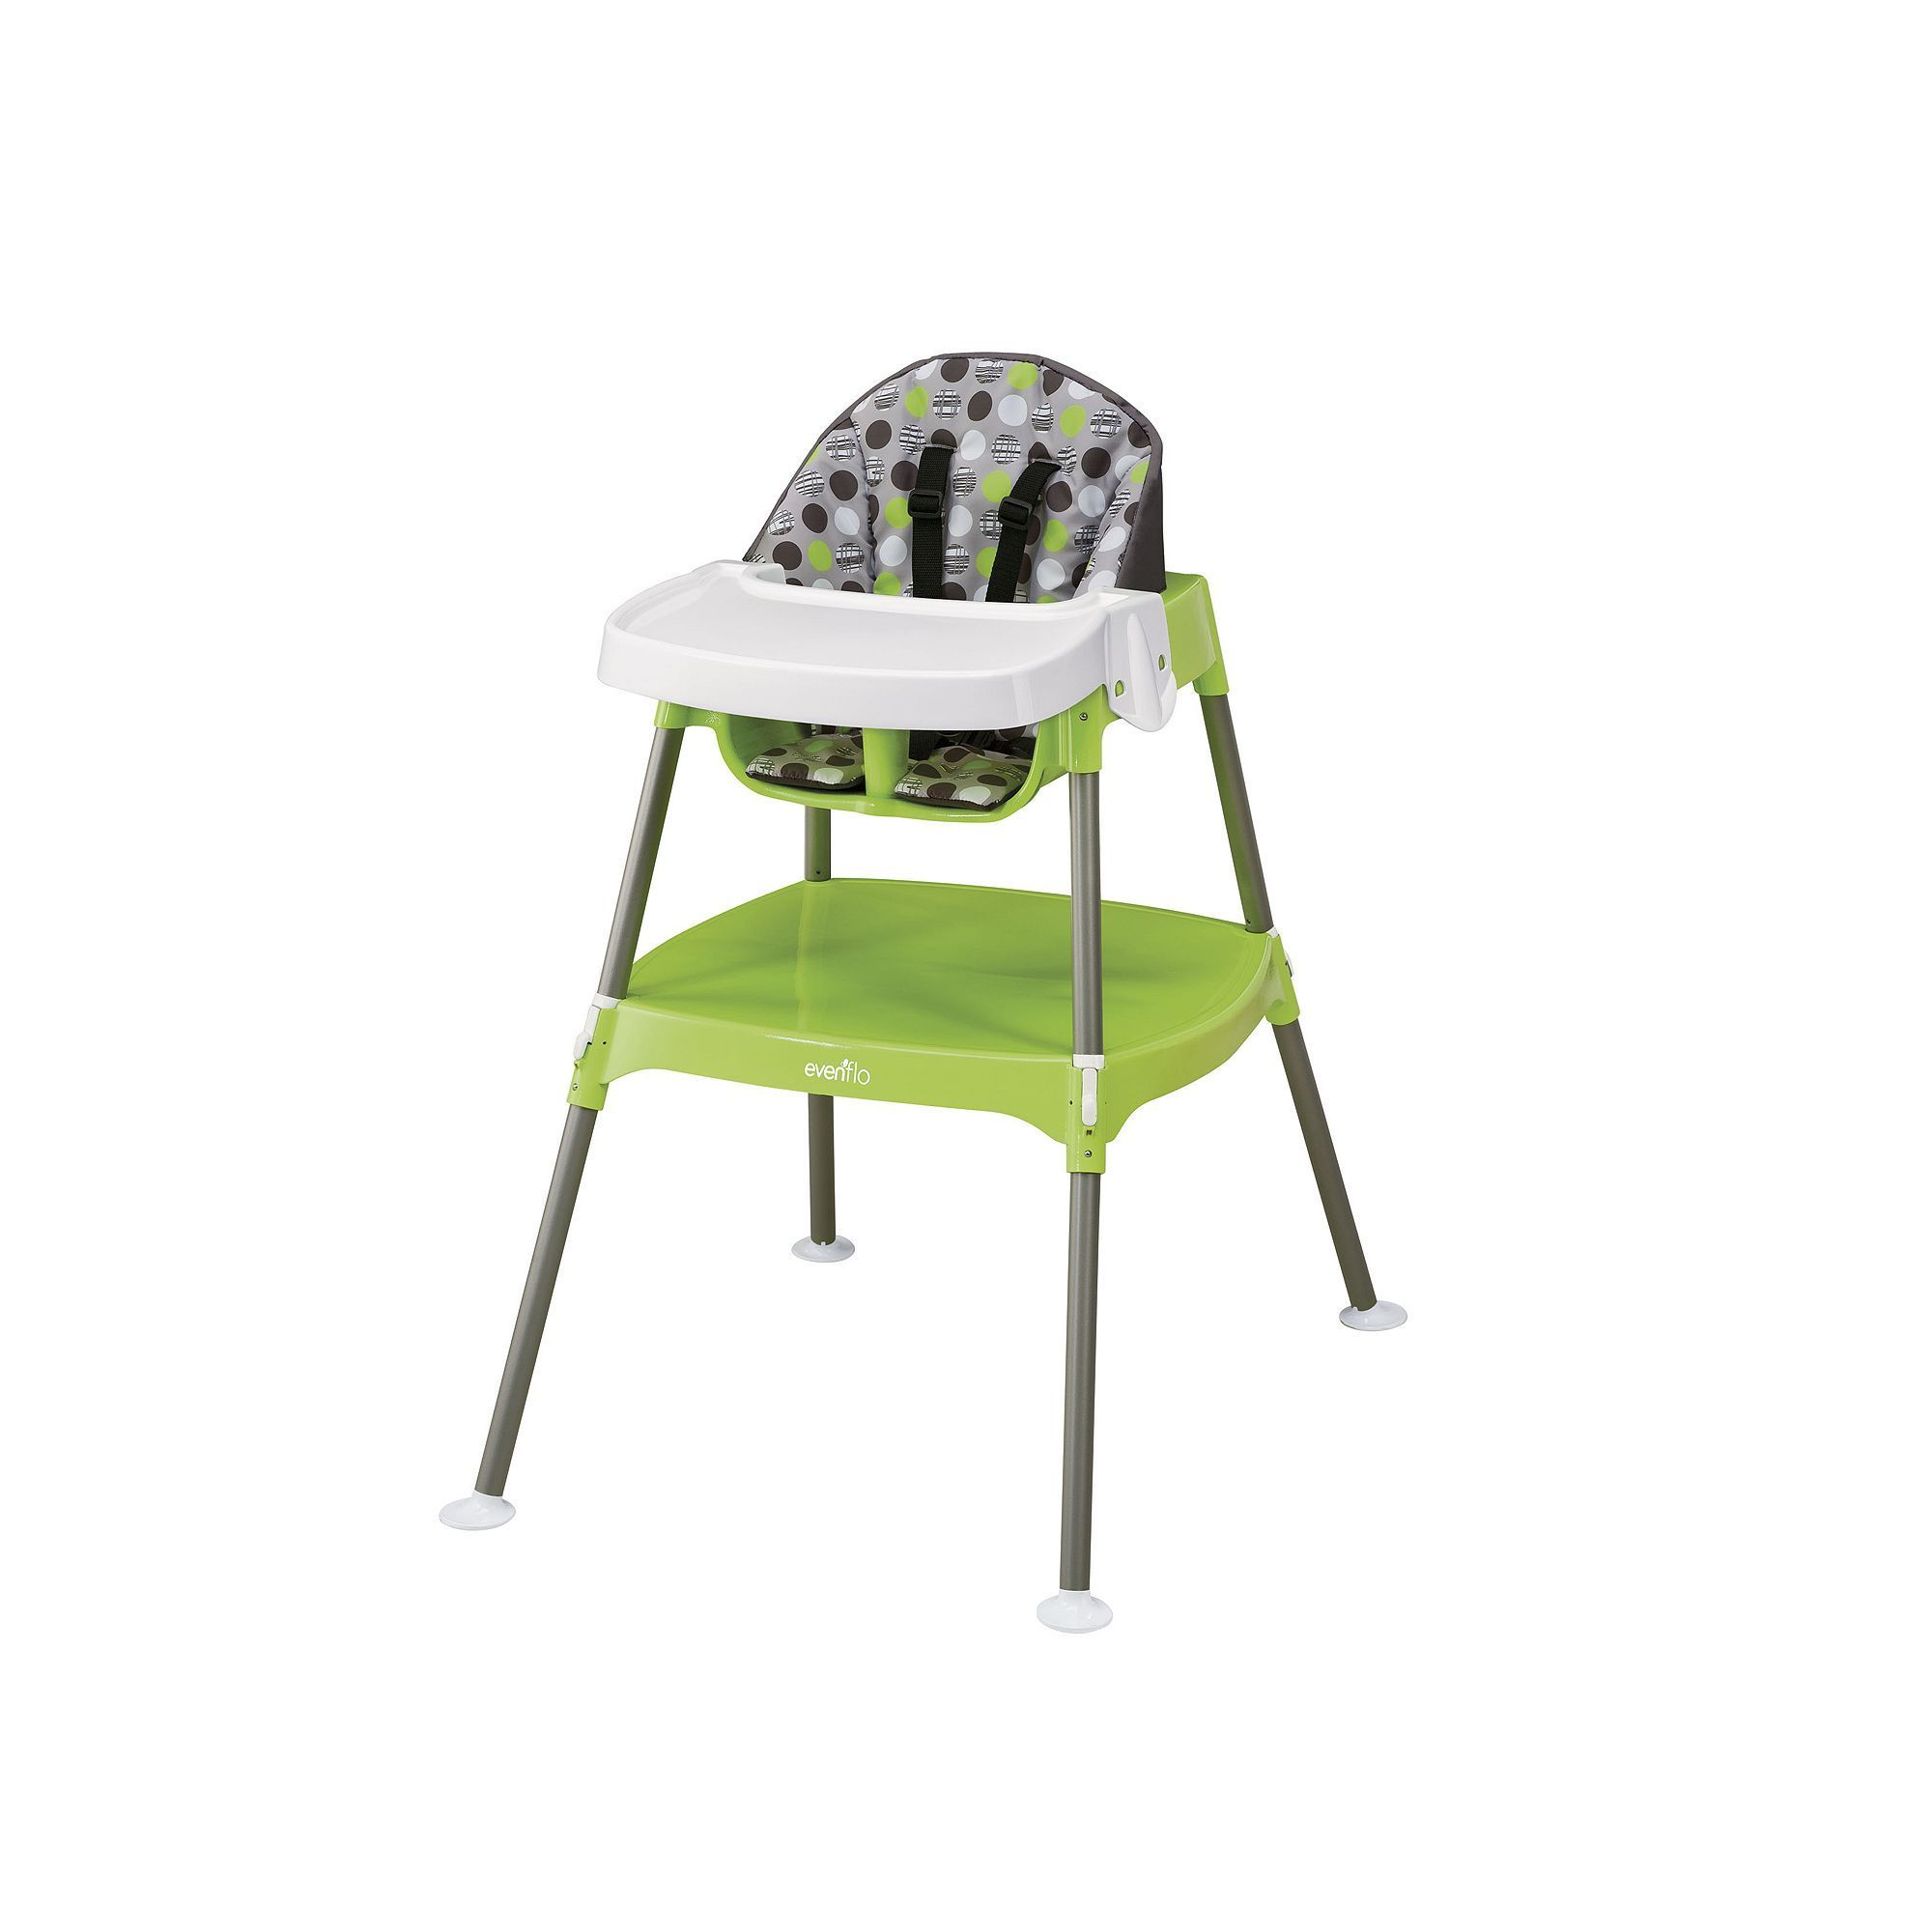 Graco high chair 4 in 1 evenflo convertible in high chair multicolor  high chairs